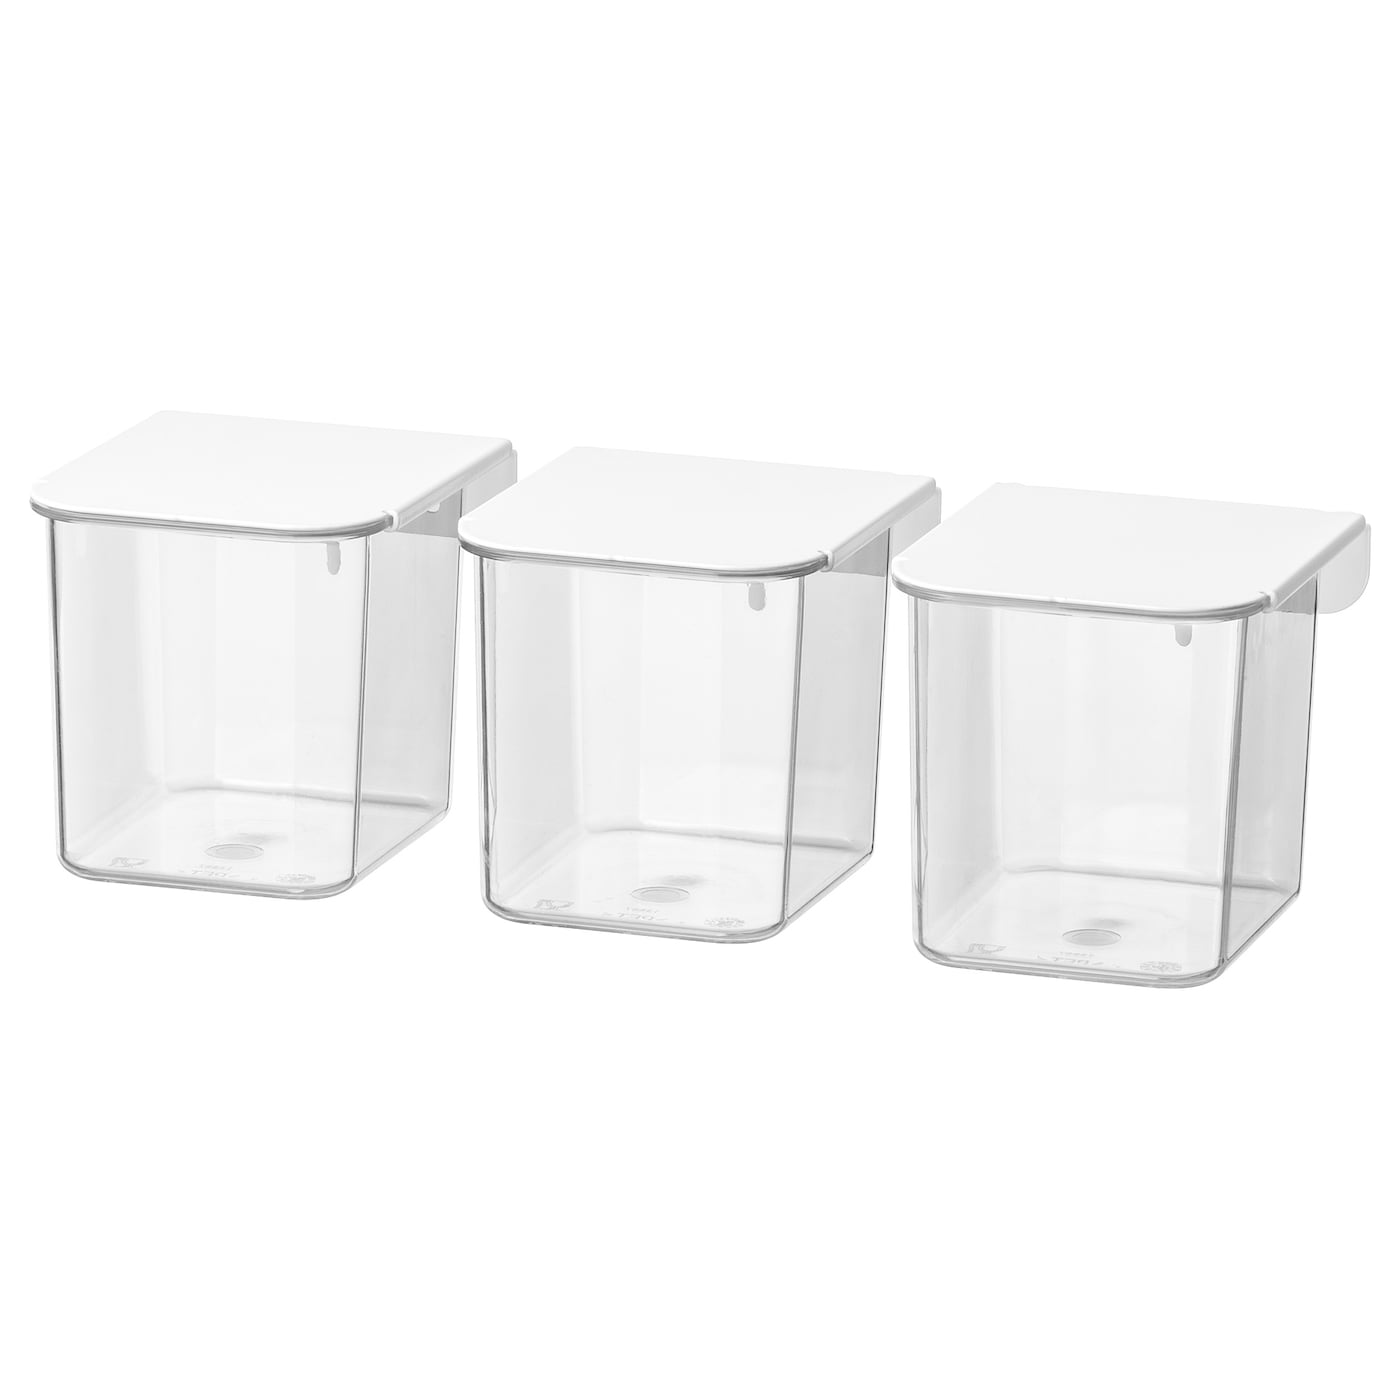 skadis-container-with-lid-white__0711385_PE728176_S5.JPG